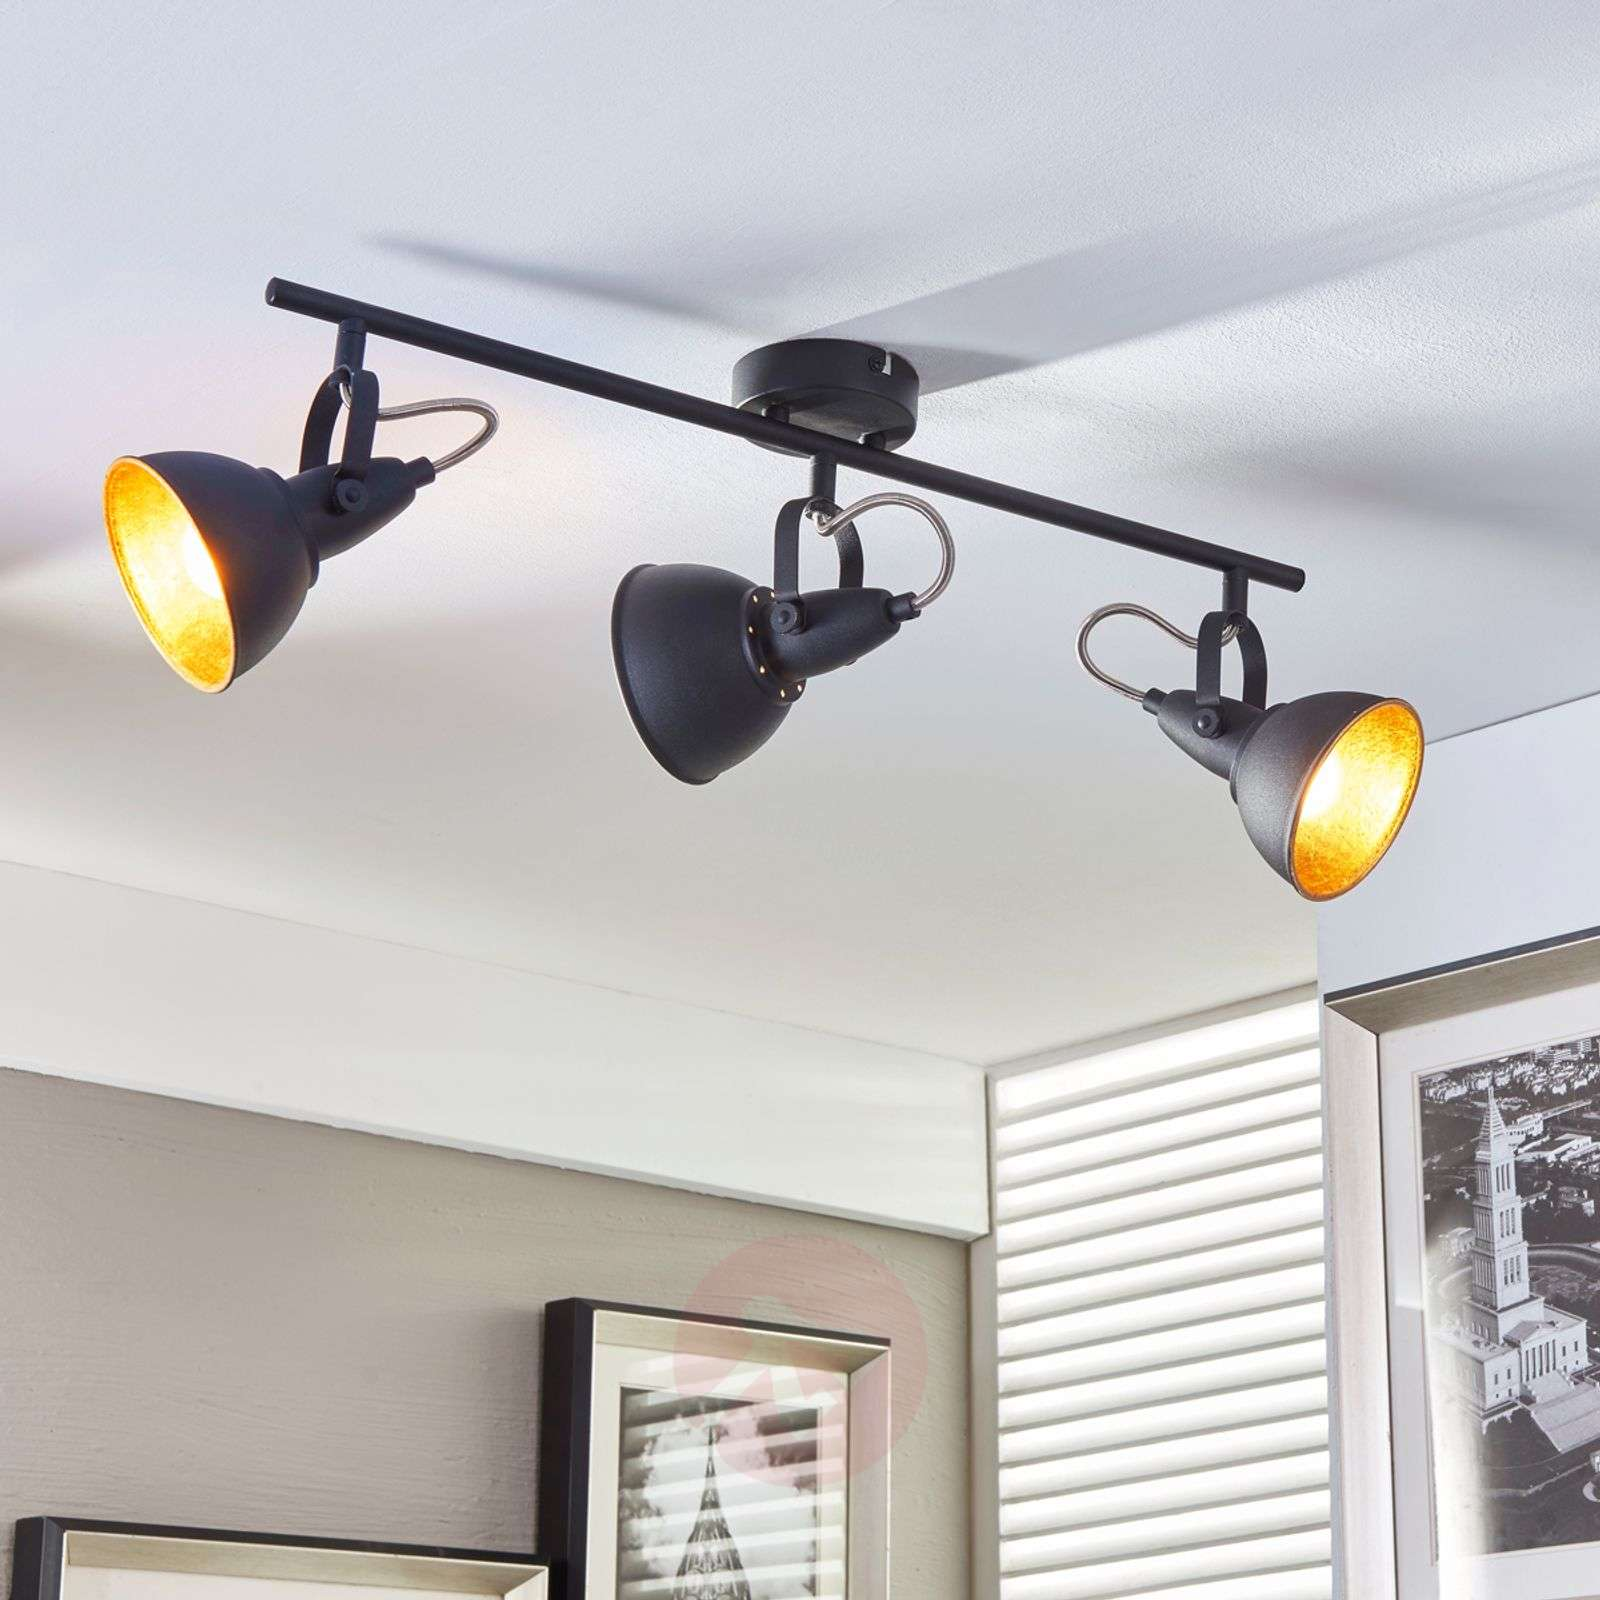 3-bulb ceiling light Julin, black and gold-9620730-03